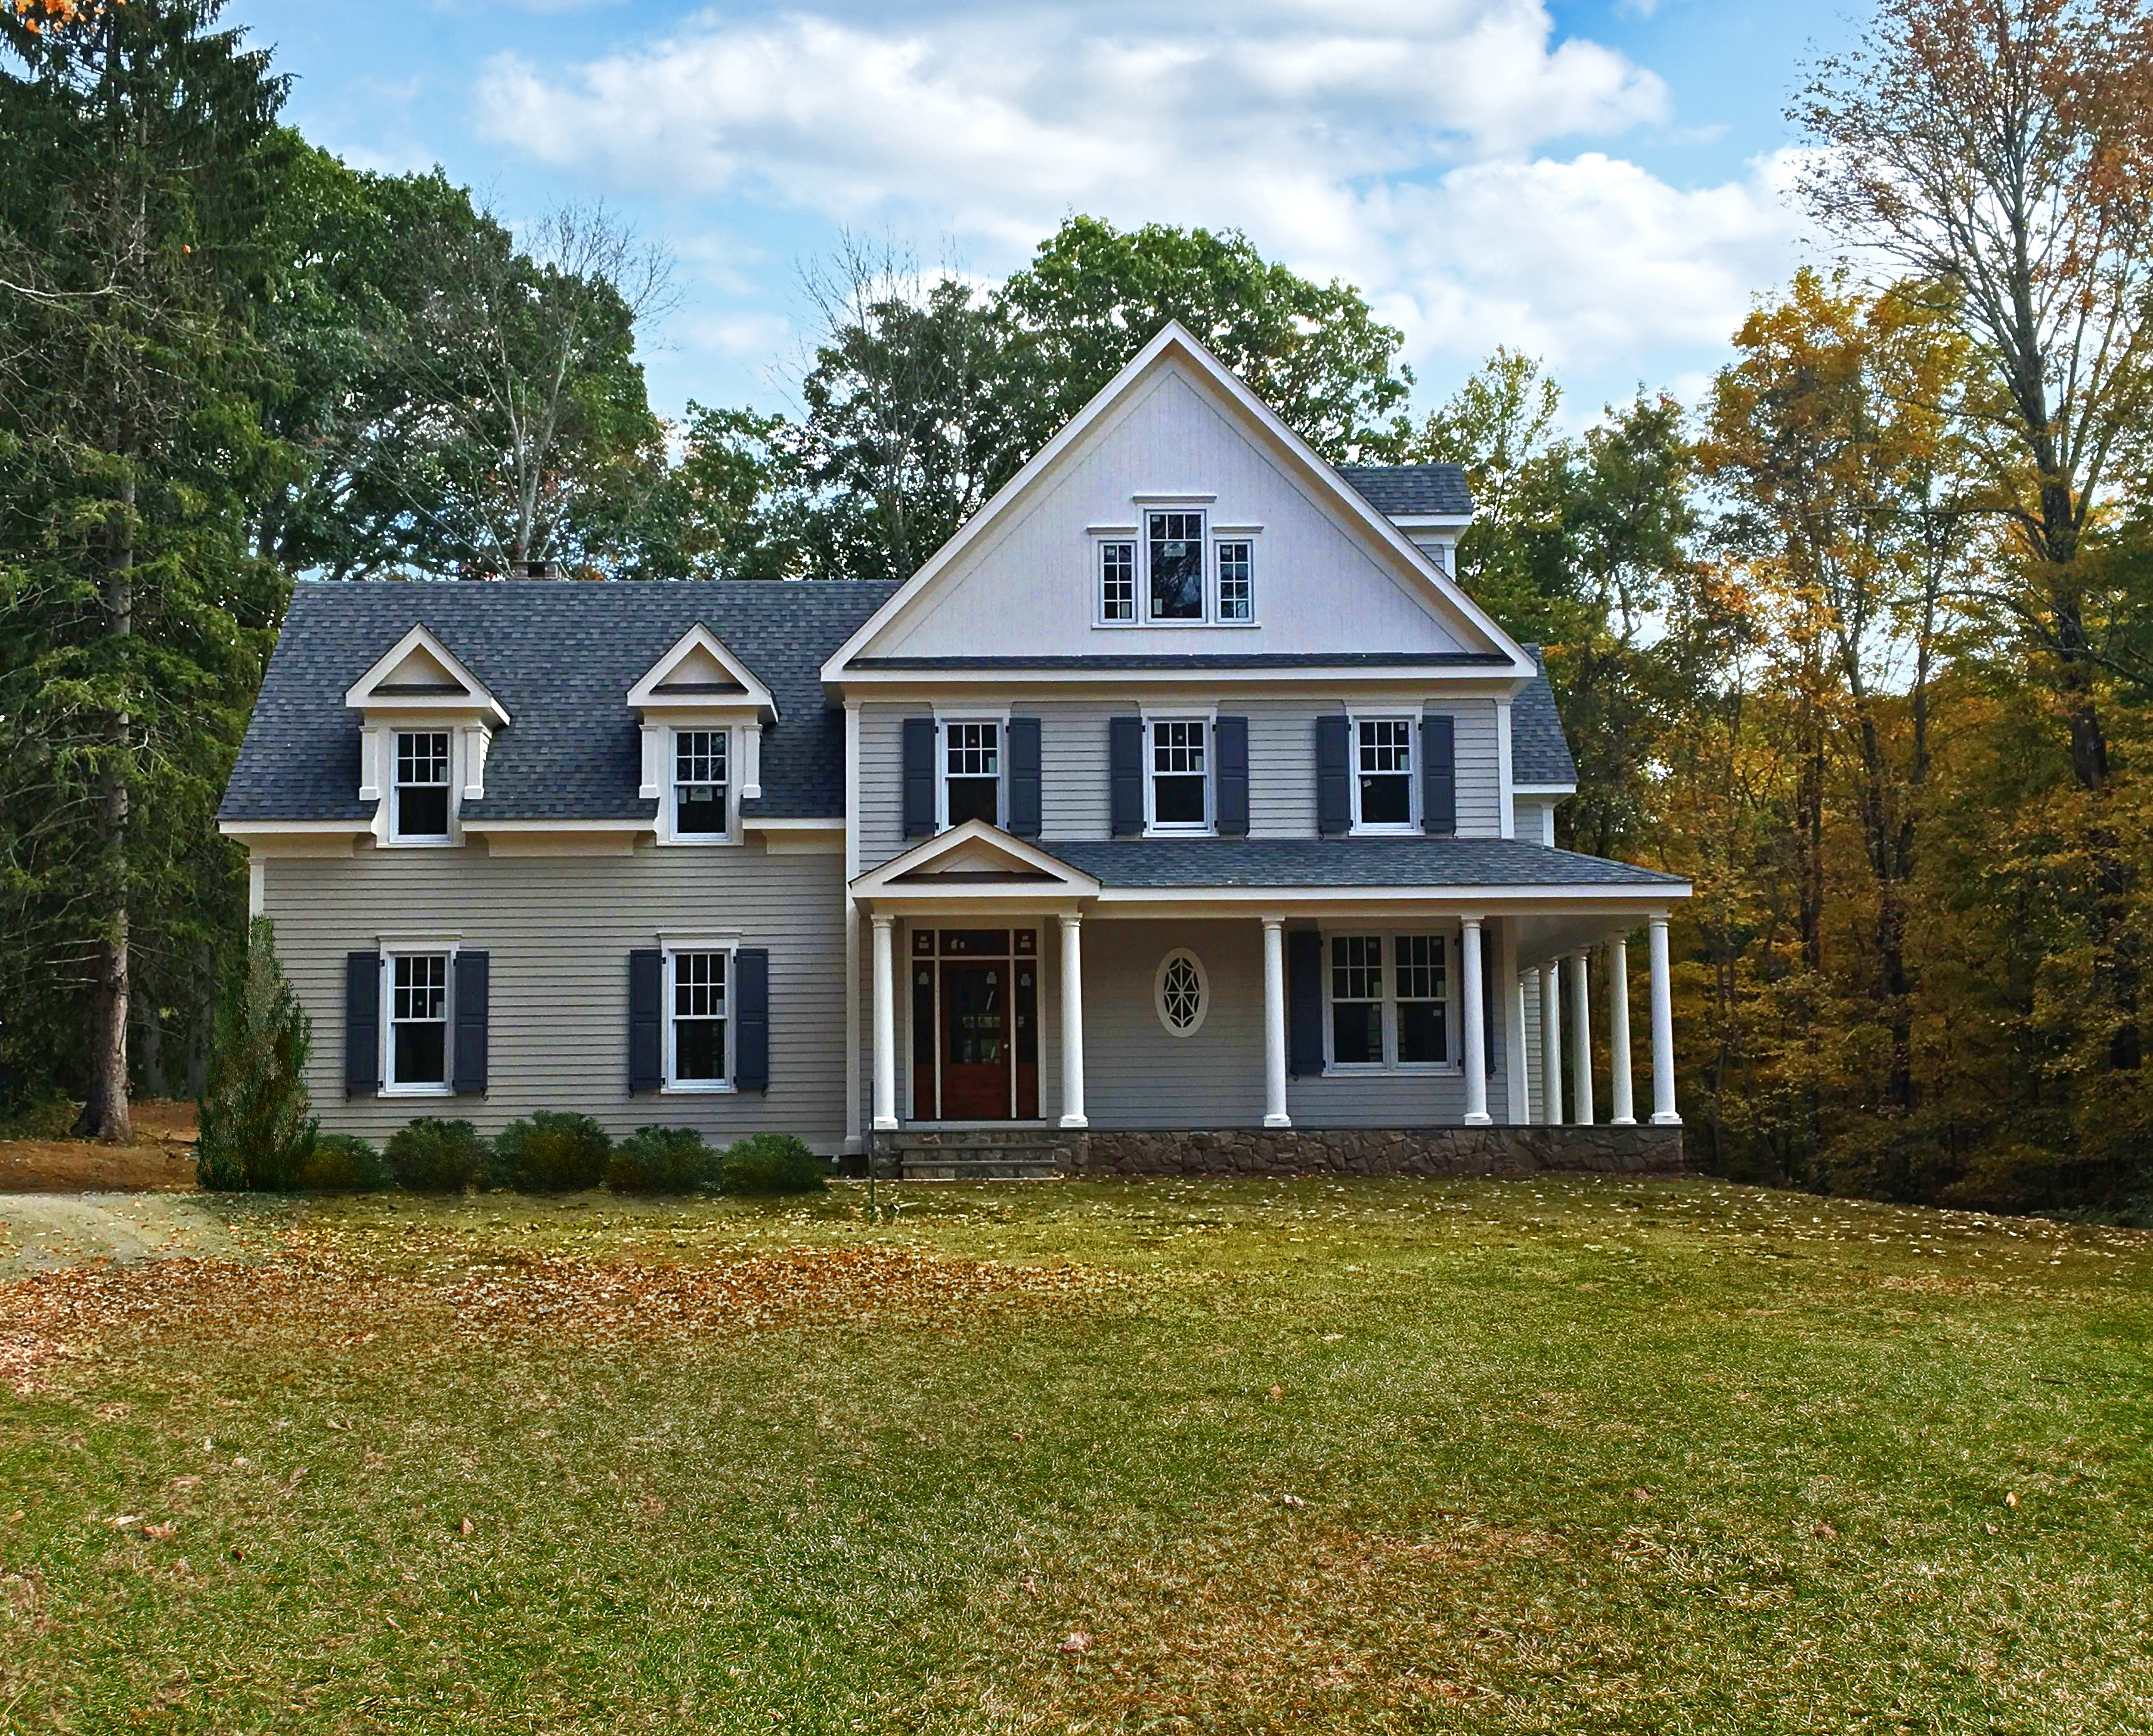 Single Family Home for Sale at New Construction 263 Peaceable Street Ridgefield, Connecticut, 06877 United States